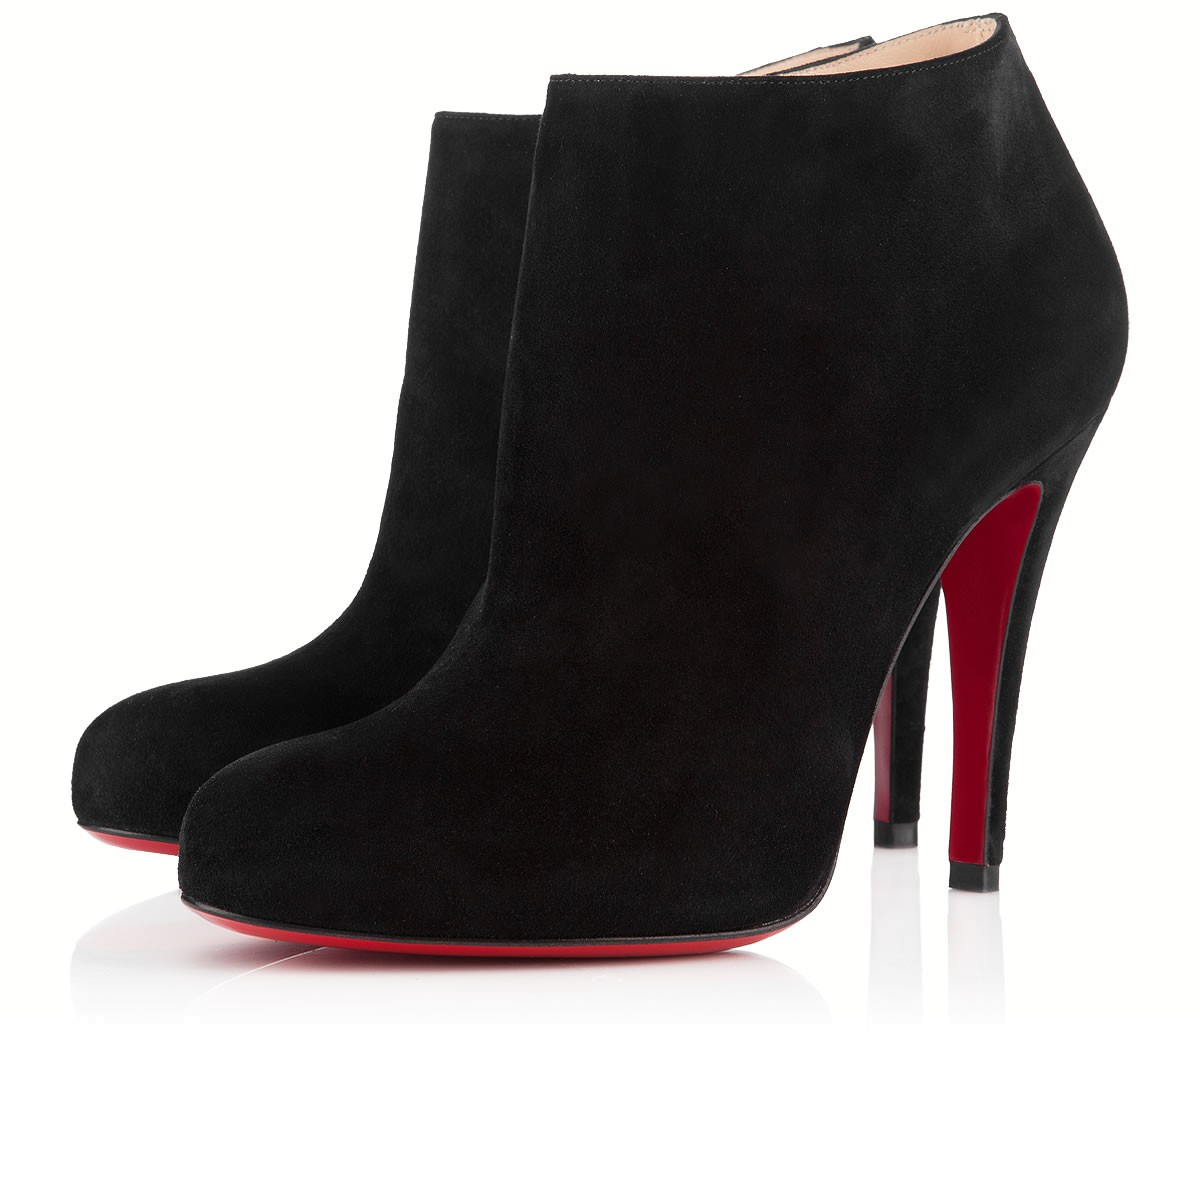 brand new a0d23 a92dd Belle 100mm Black Suede